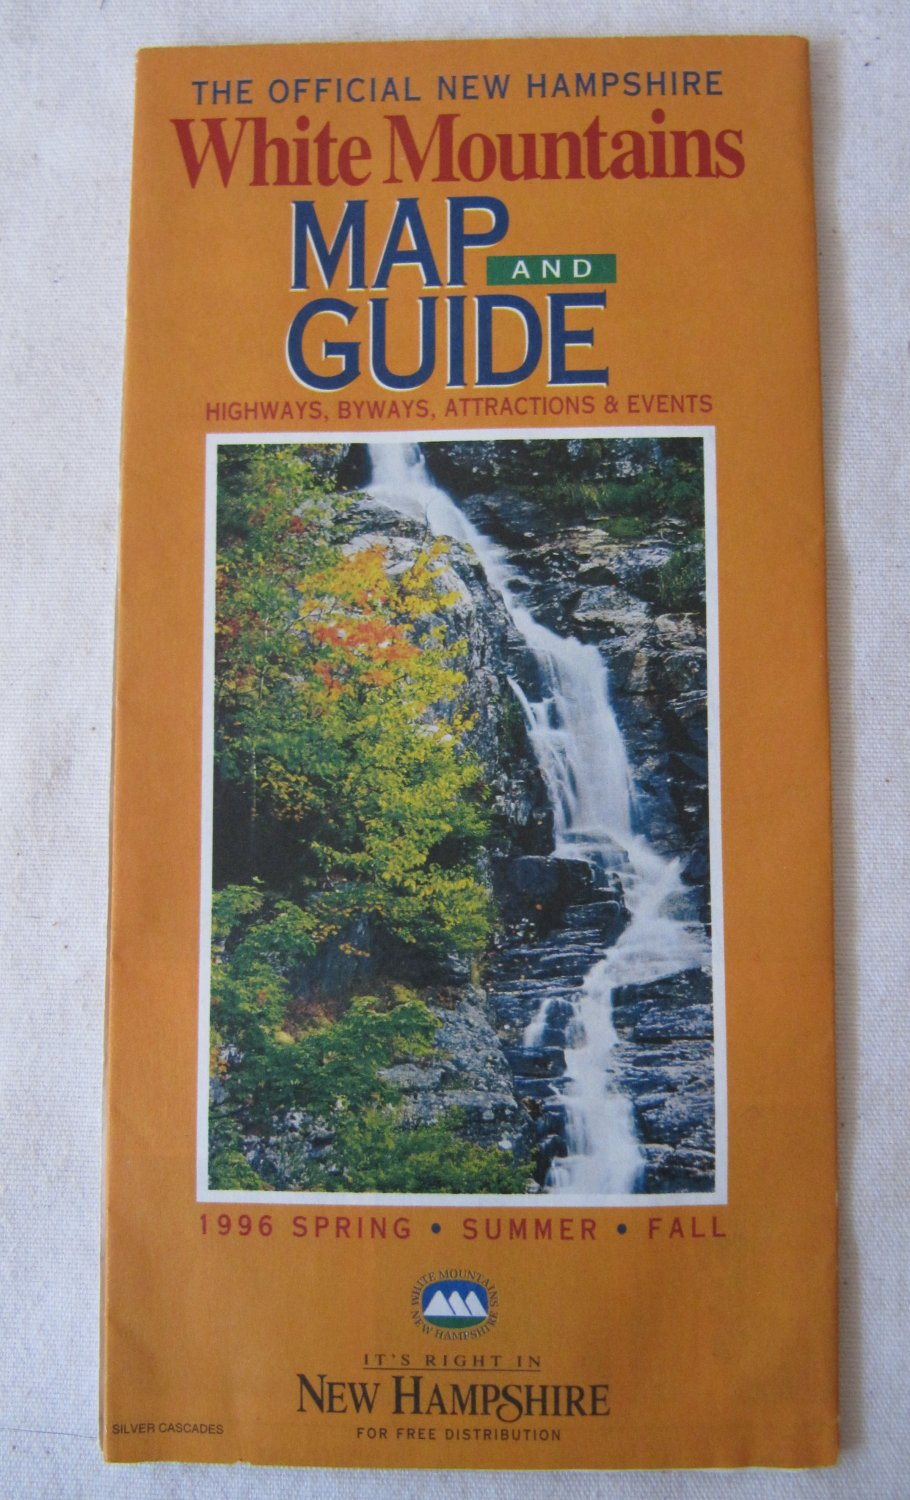 Vintage 1996 Official New Hampshire White Mountains Road Highway Map and Guide